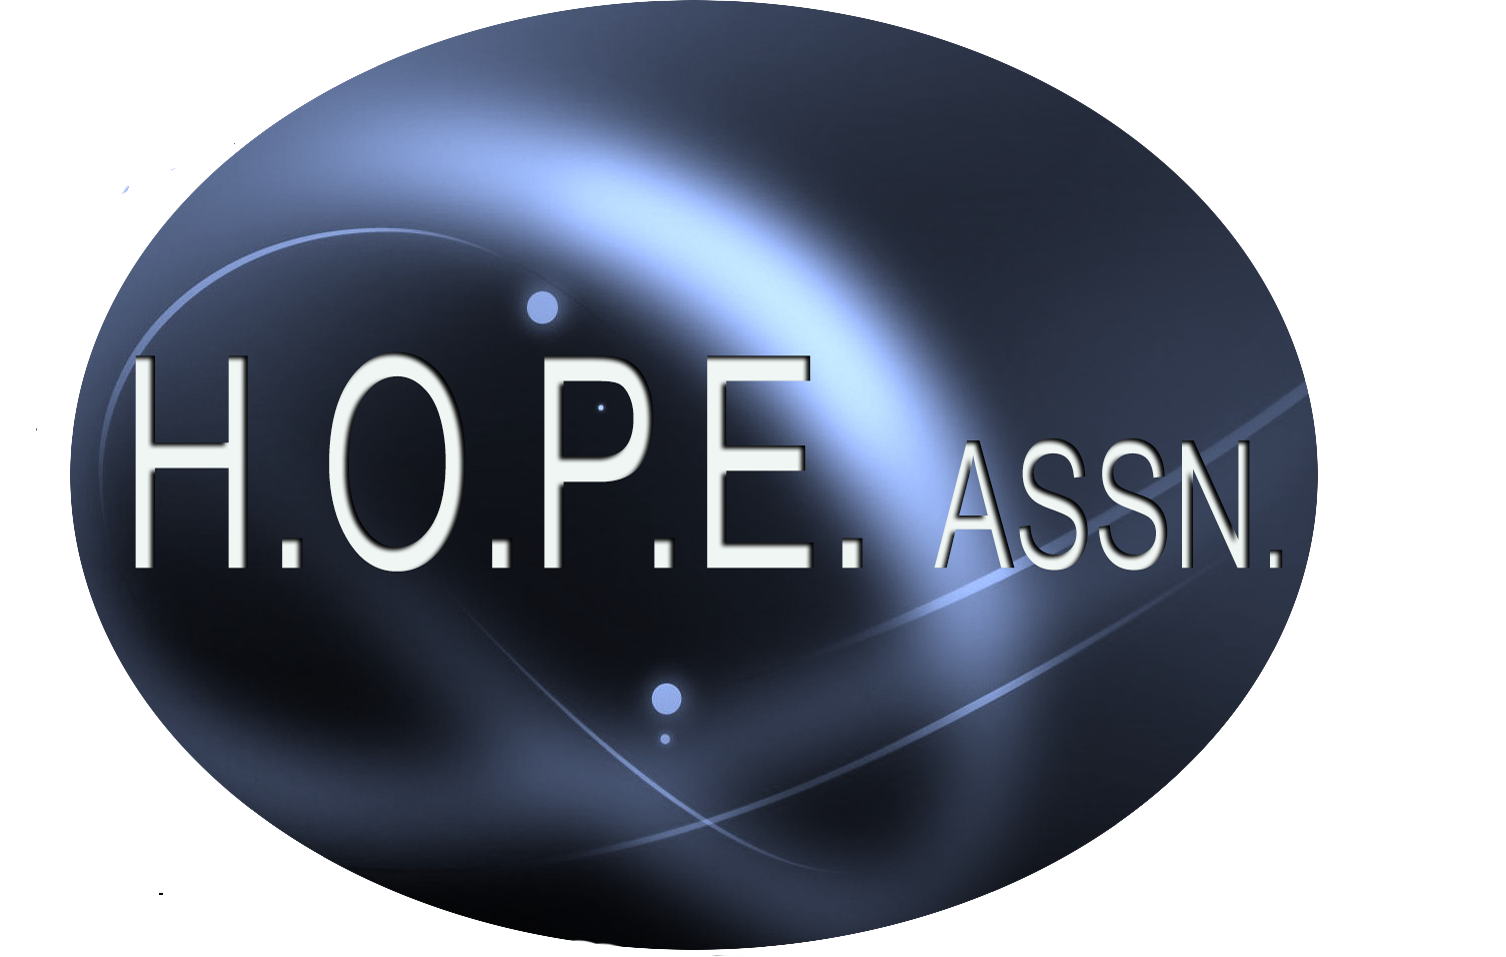 hope-_blue-steel-logo-oval-larger